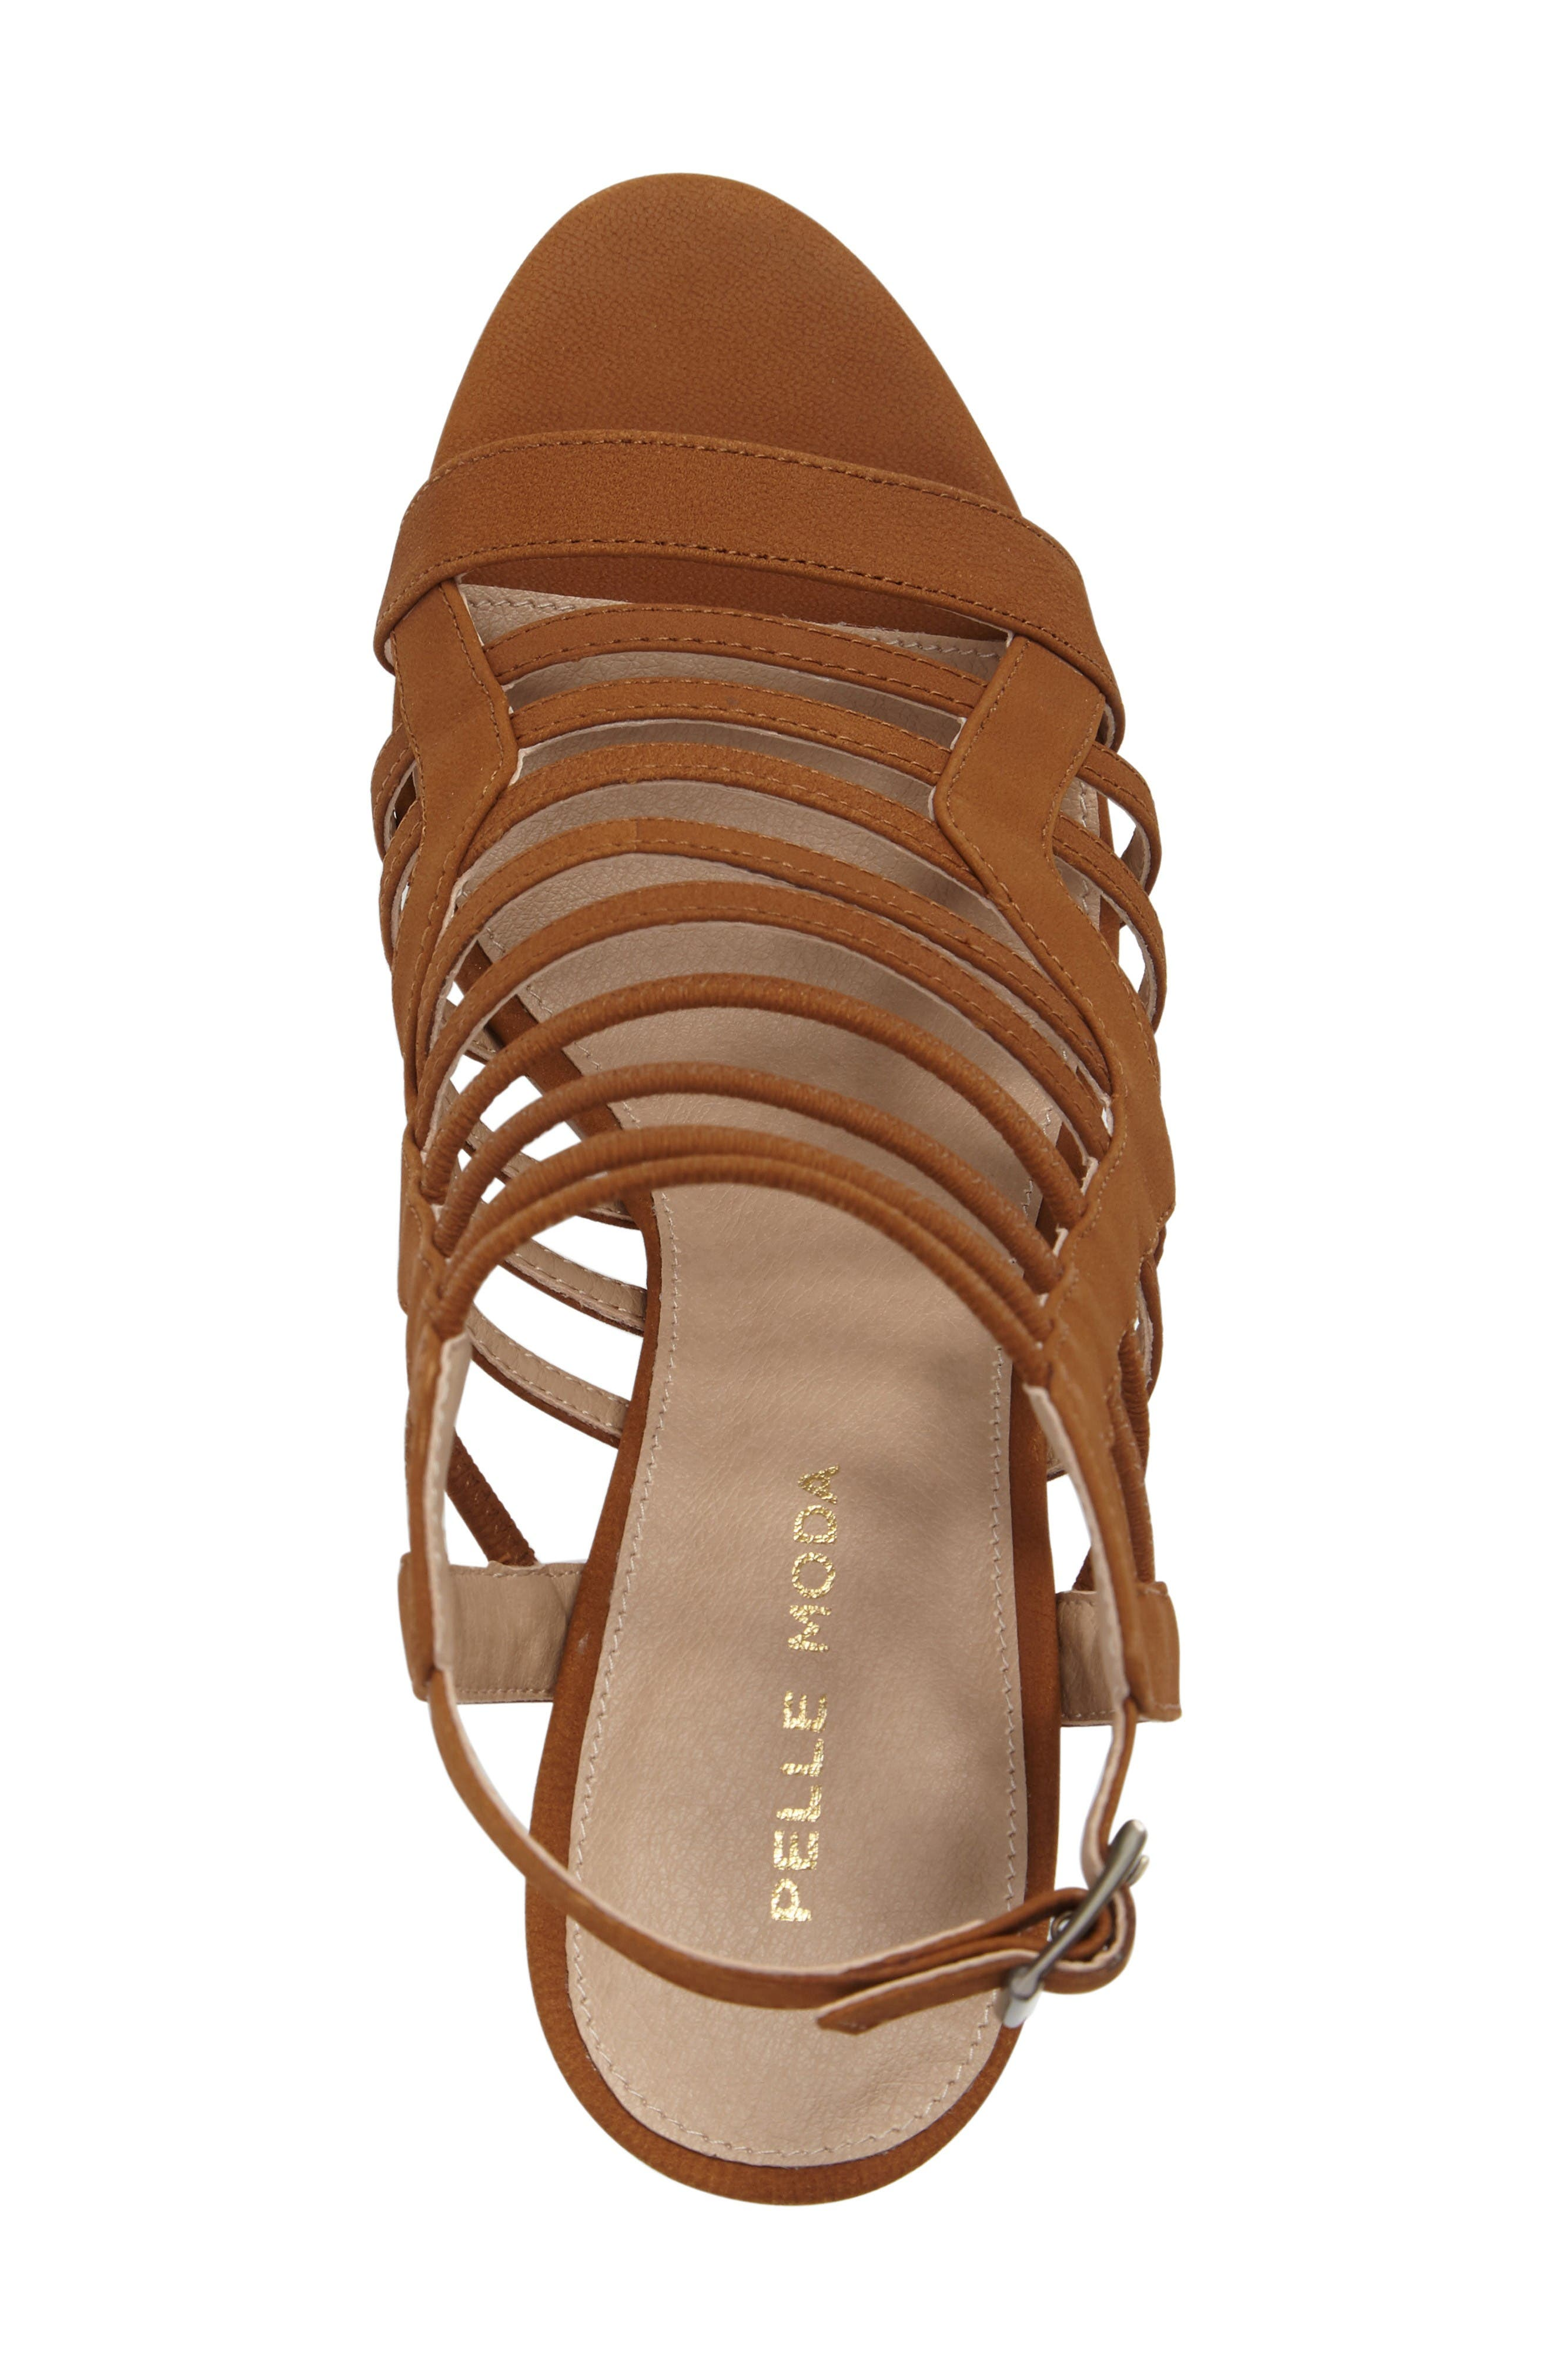 Bonitta Cage Sandal,                             Alternate thumbnail 5, color,                             Luggage Leather